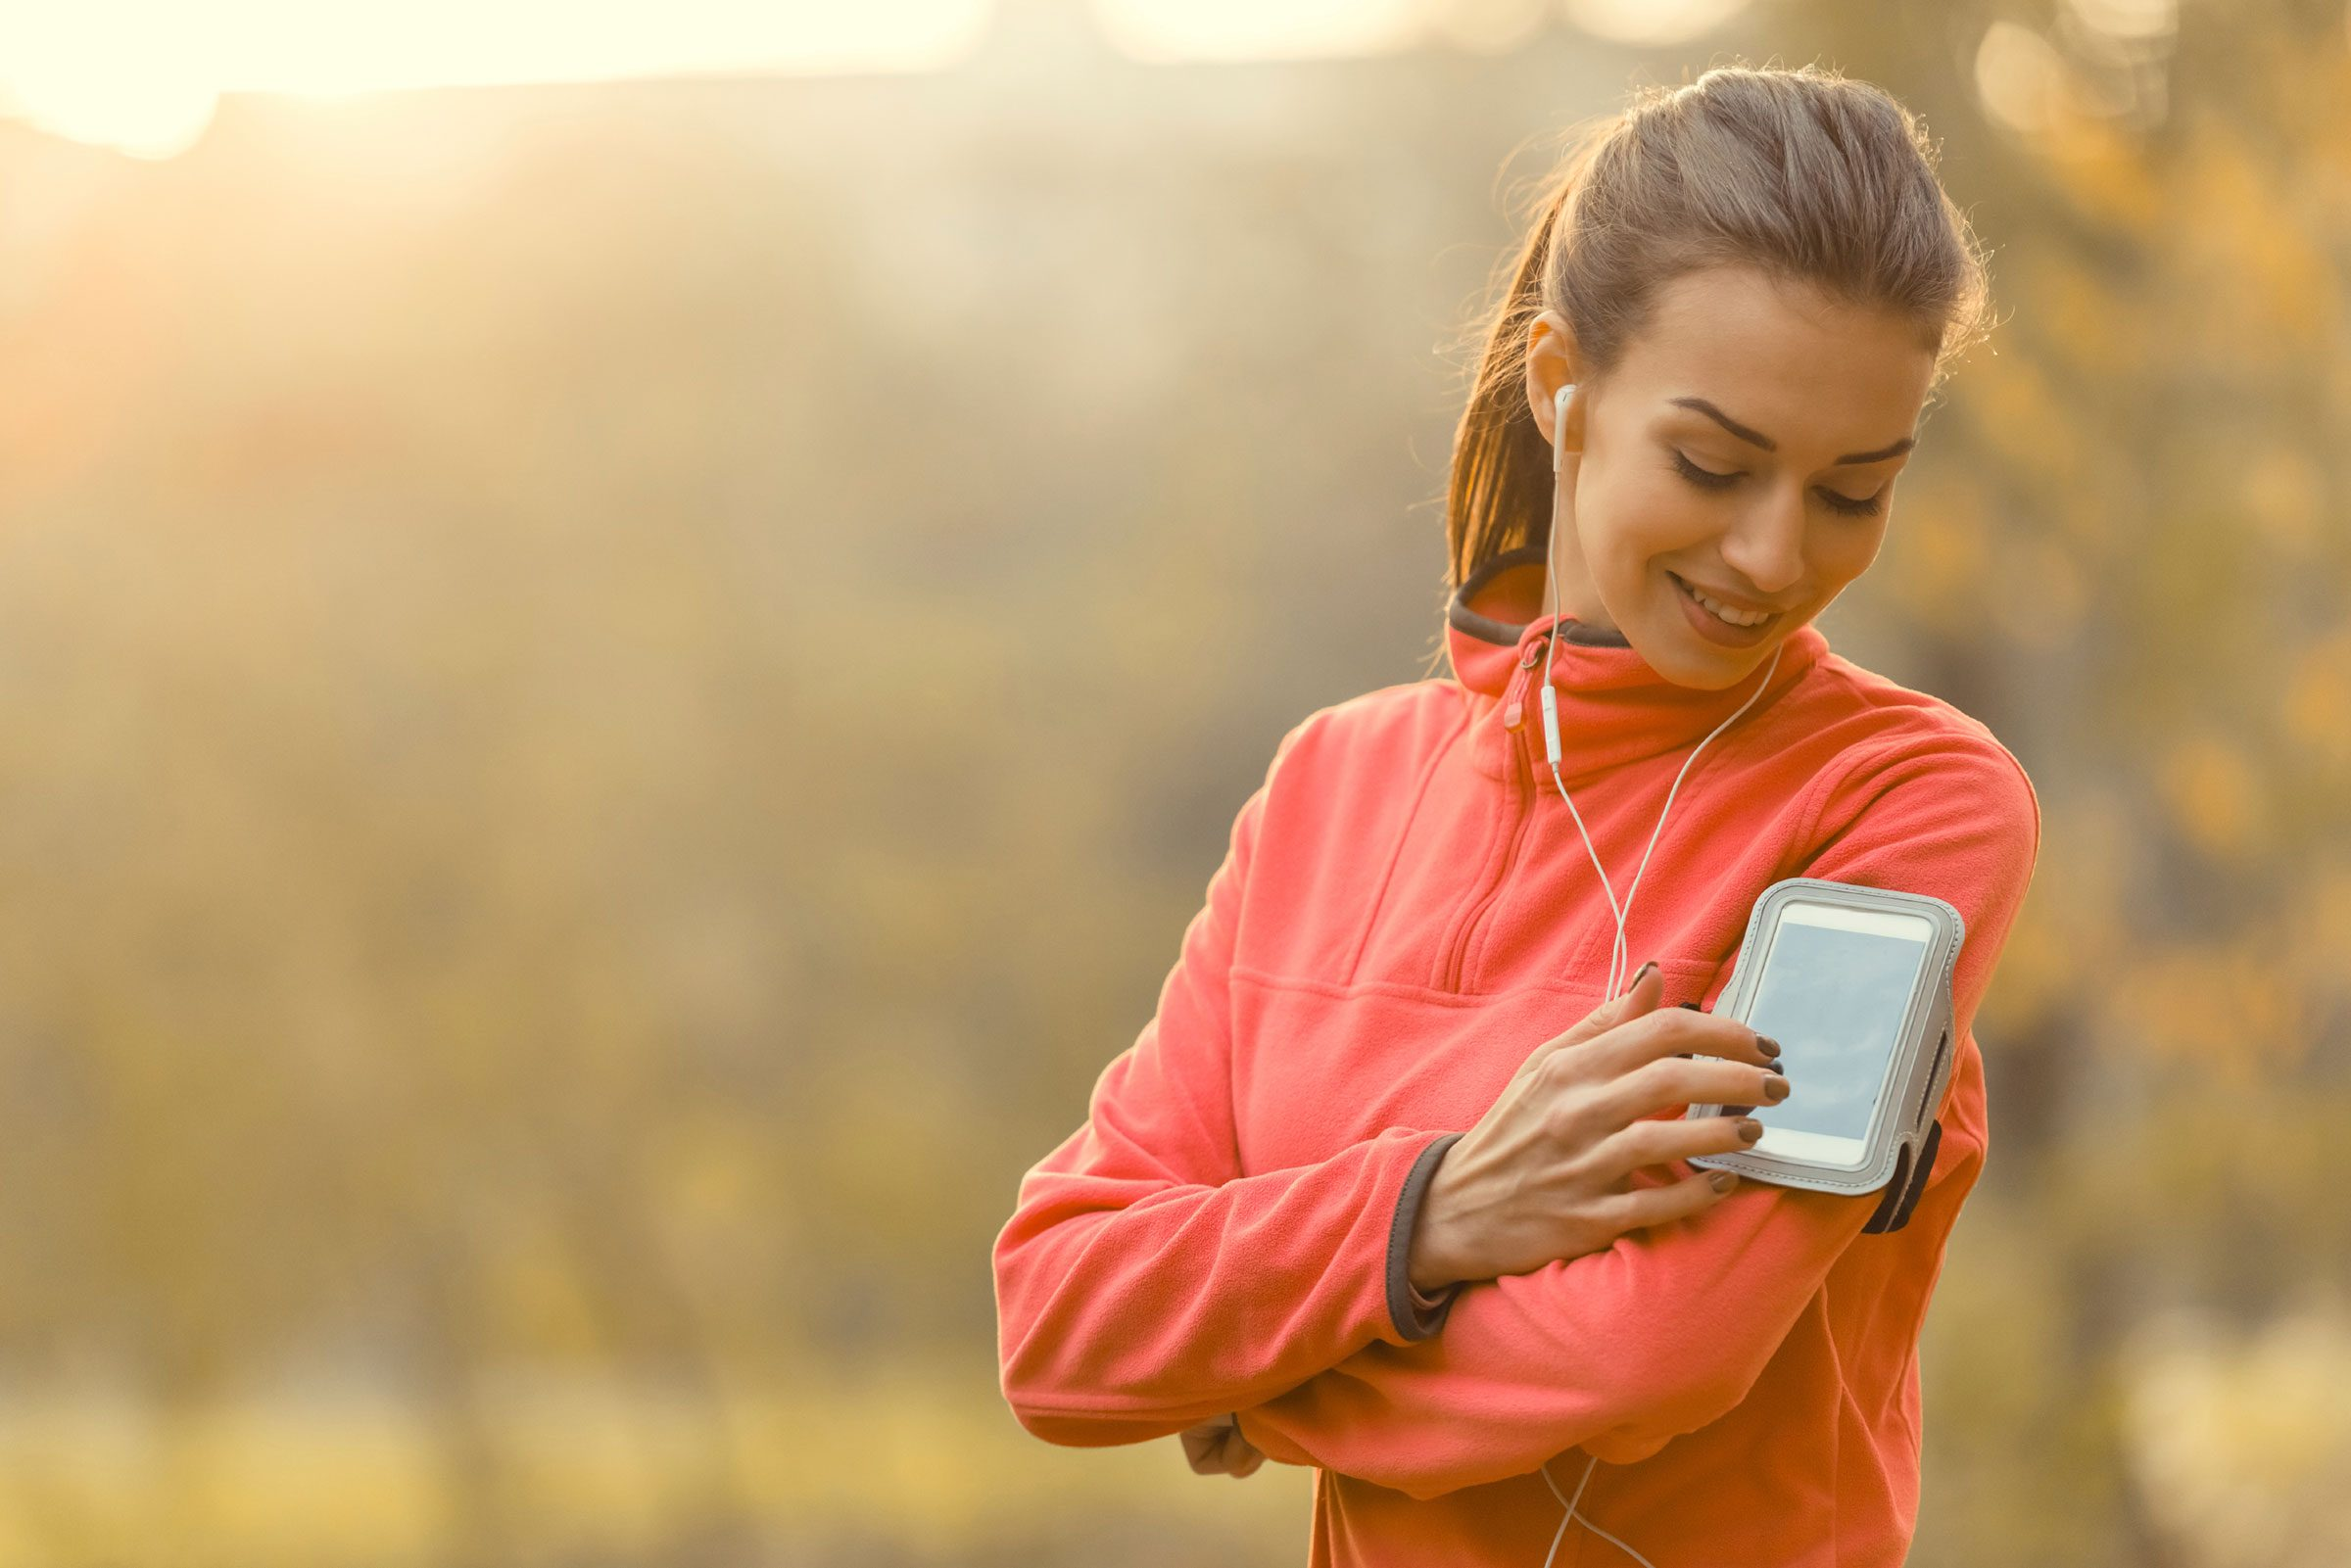 how does exercise affect mood